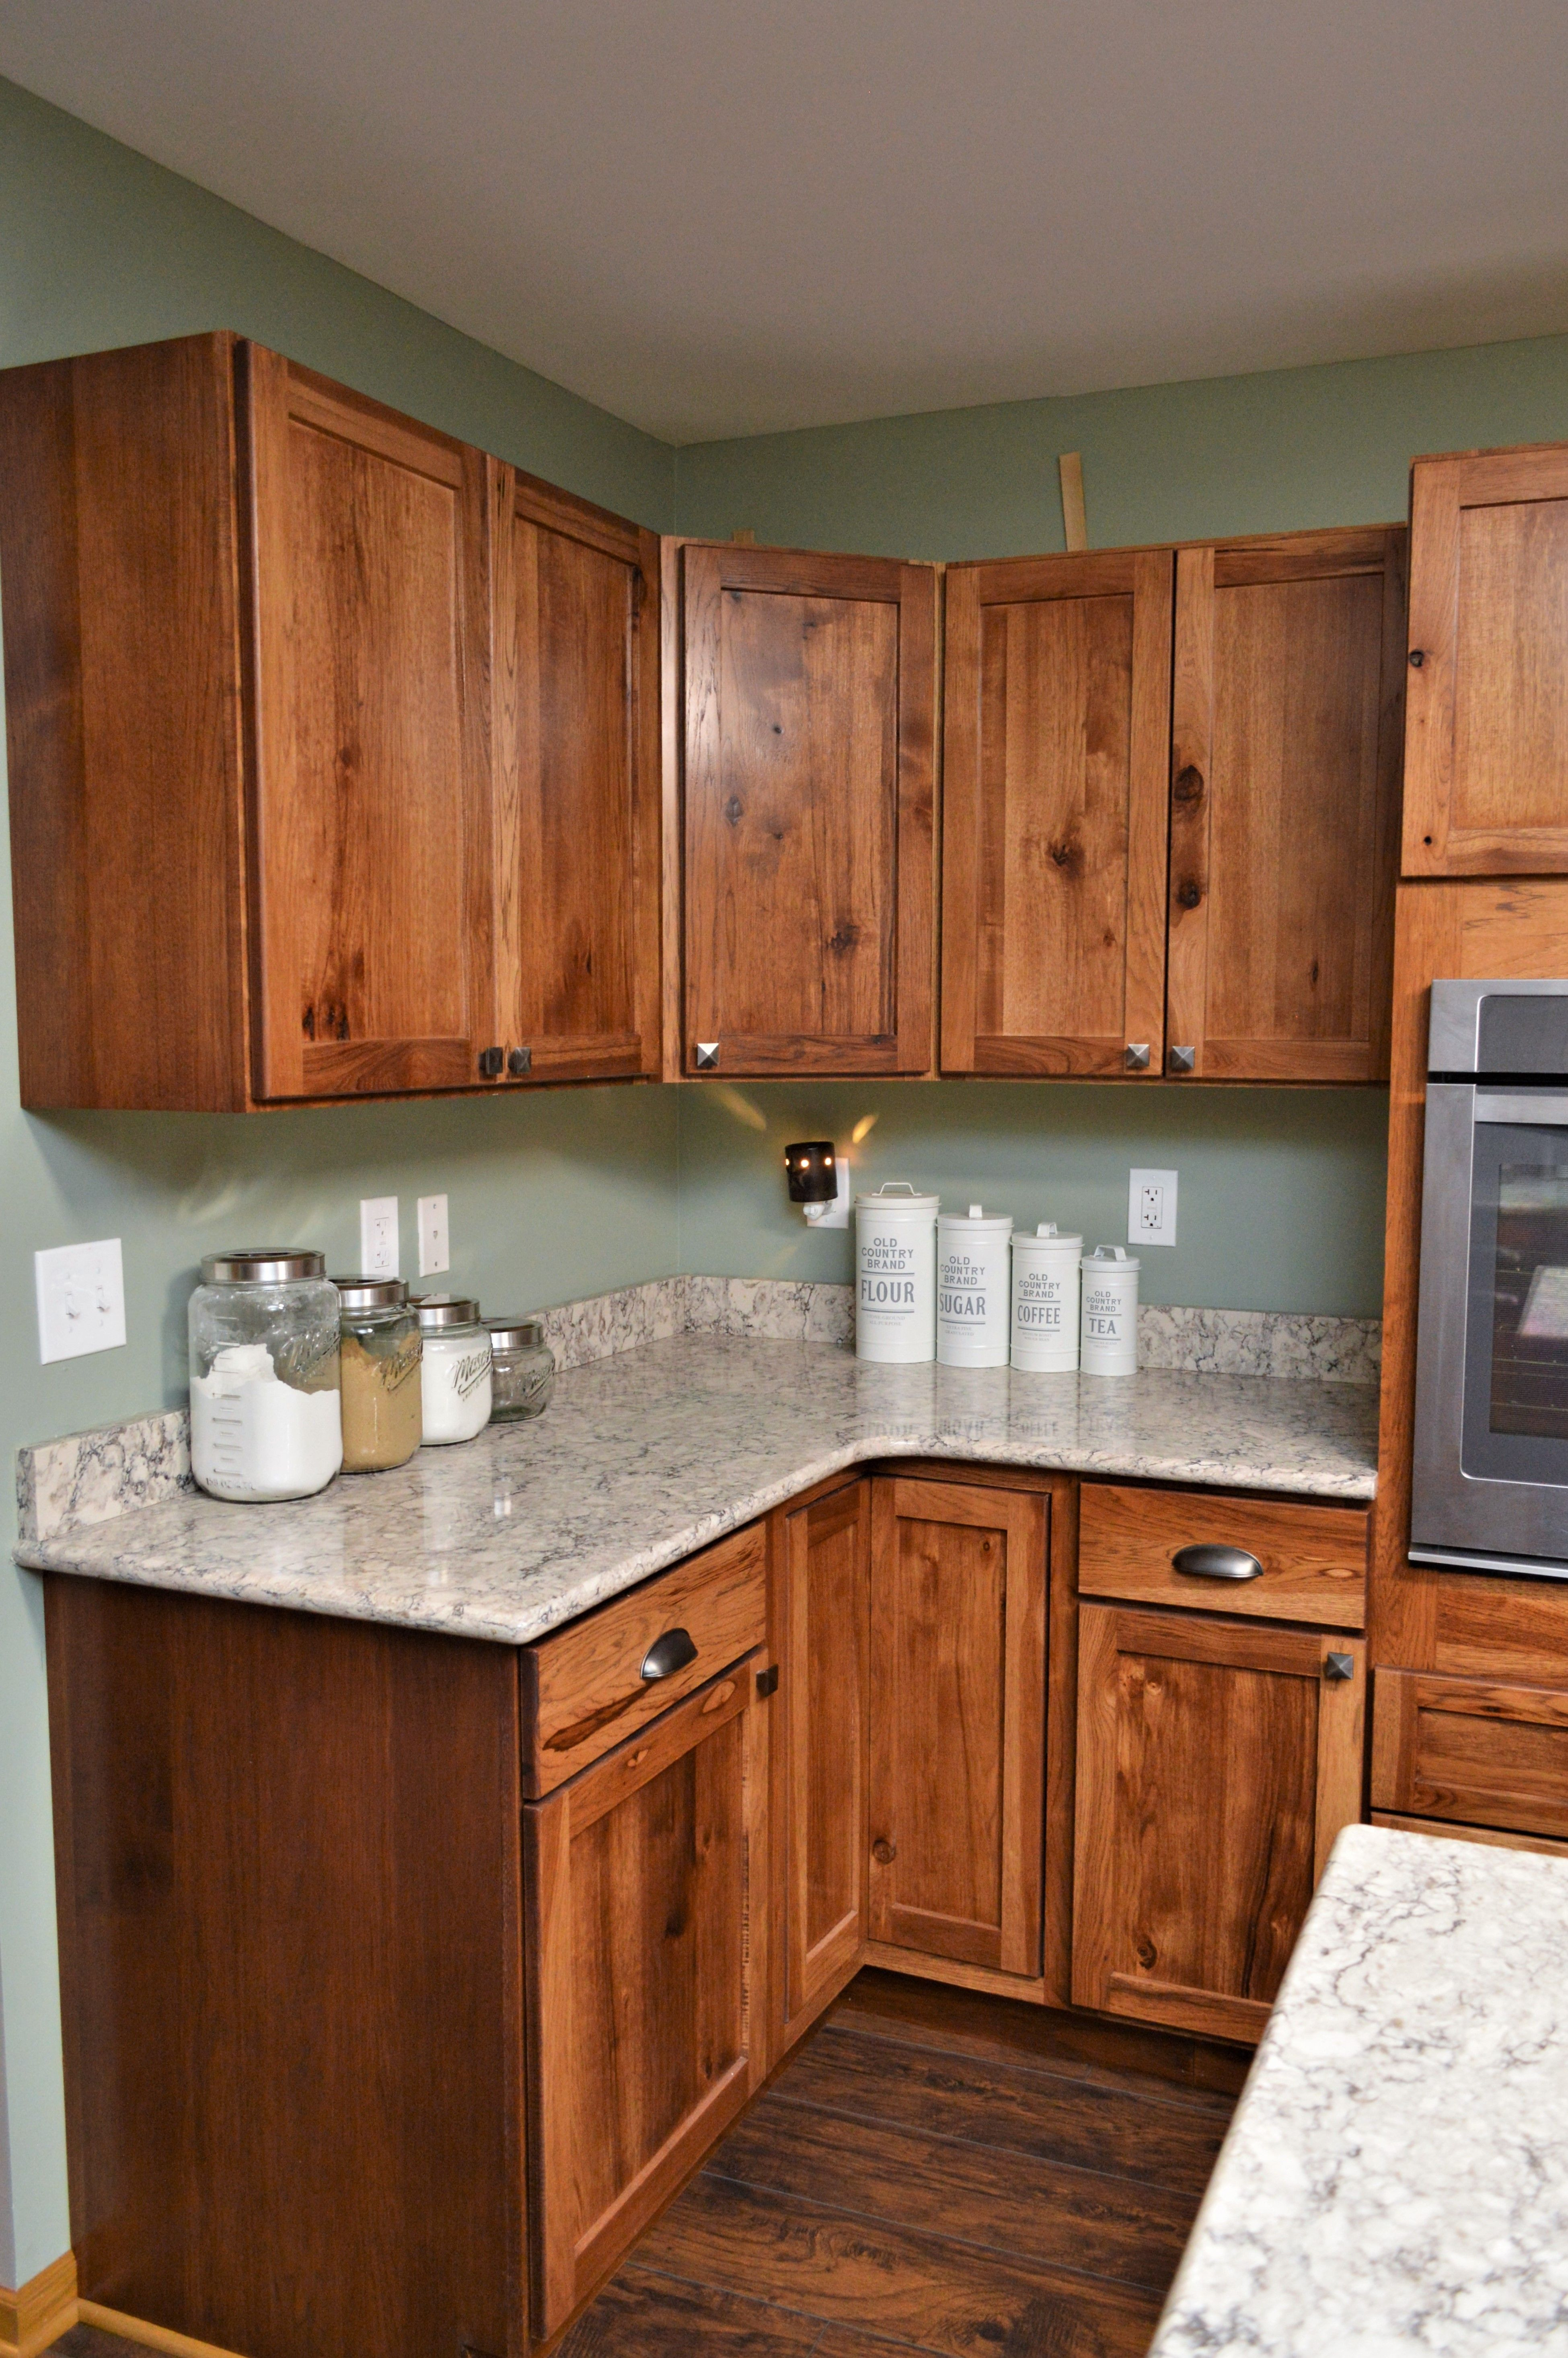 Bailey S Cabinets Haas Signature Collection Rustic Hickory Pecan Finish Shakertown V Door Style Rustic Kitchen Island Rustic Kitchen Hickory Cabinets